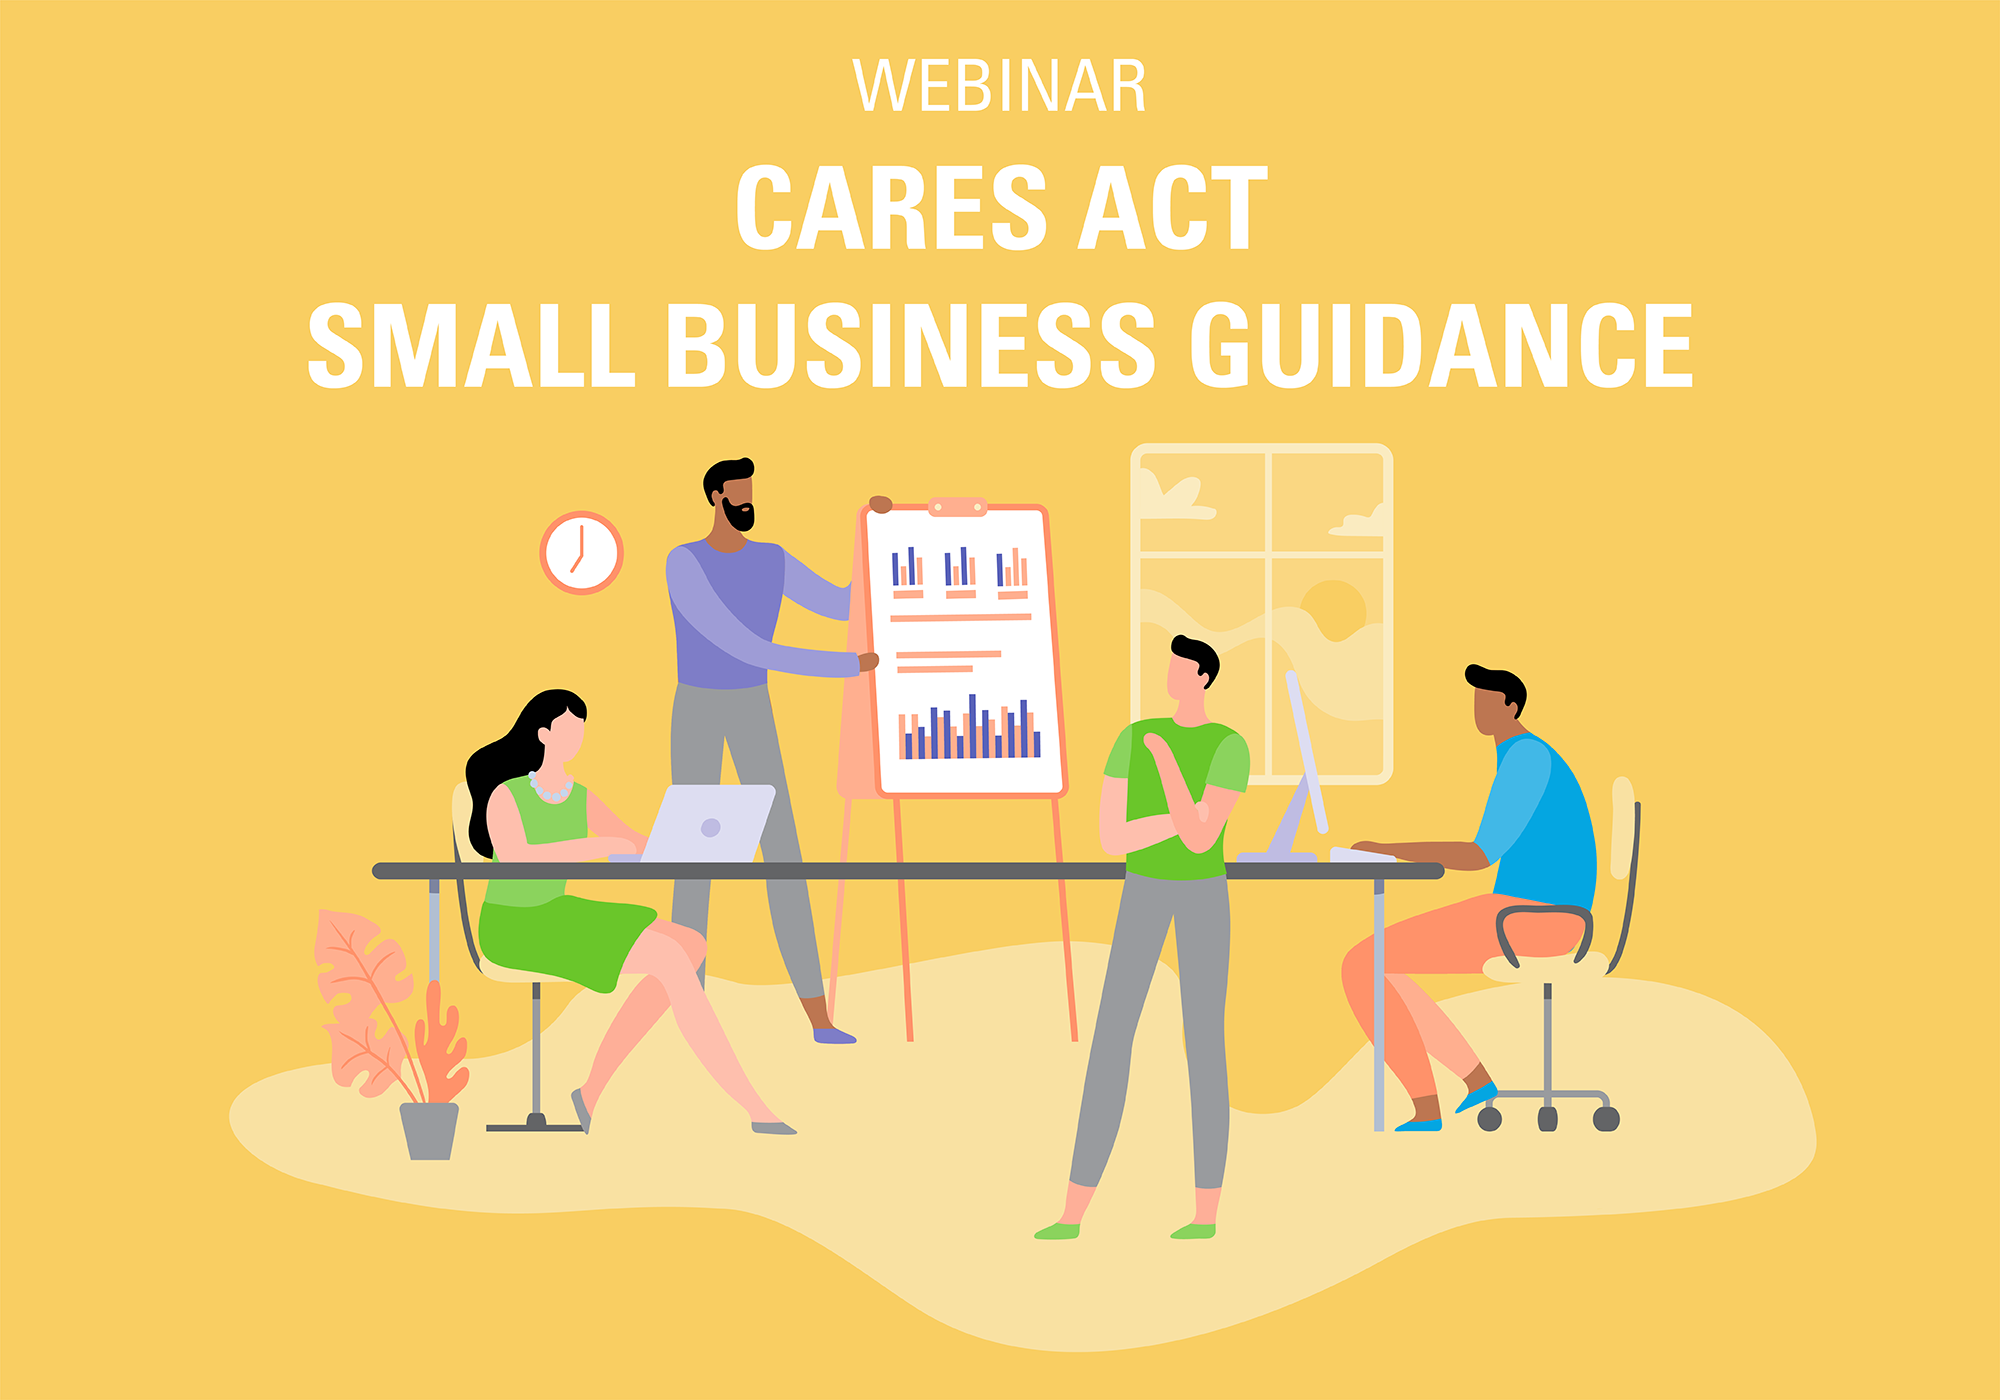 Cares act small business guidance webinar graphic